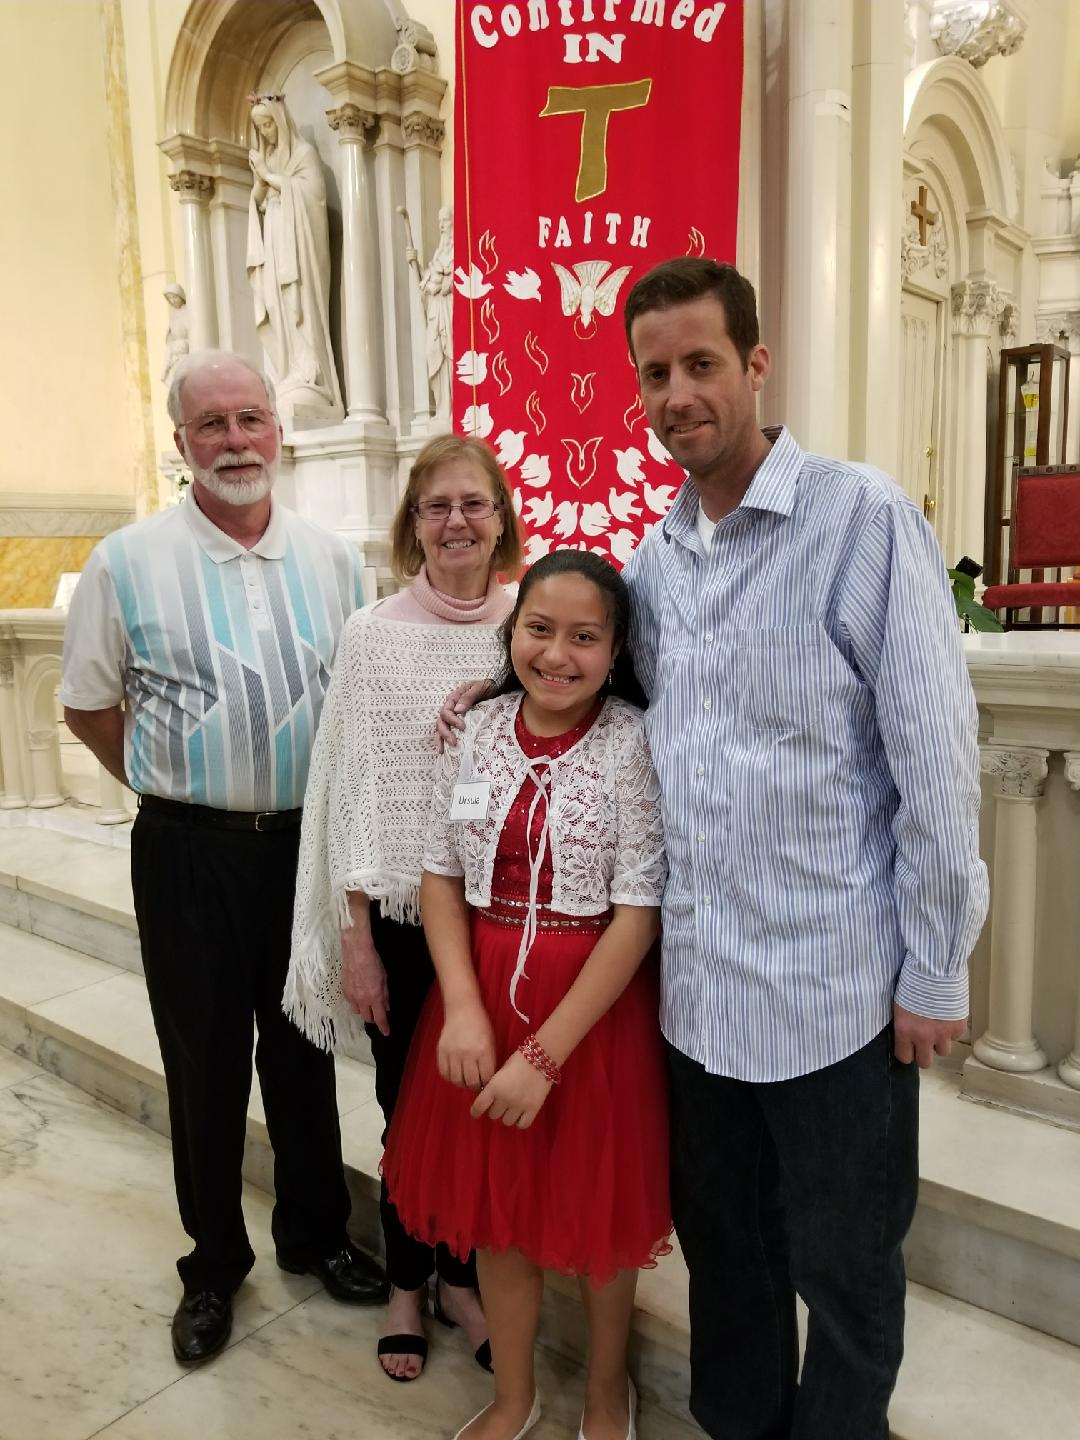 Scott Collier and his parents at Neveah's confirmation